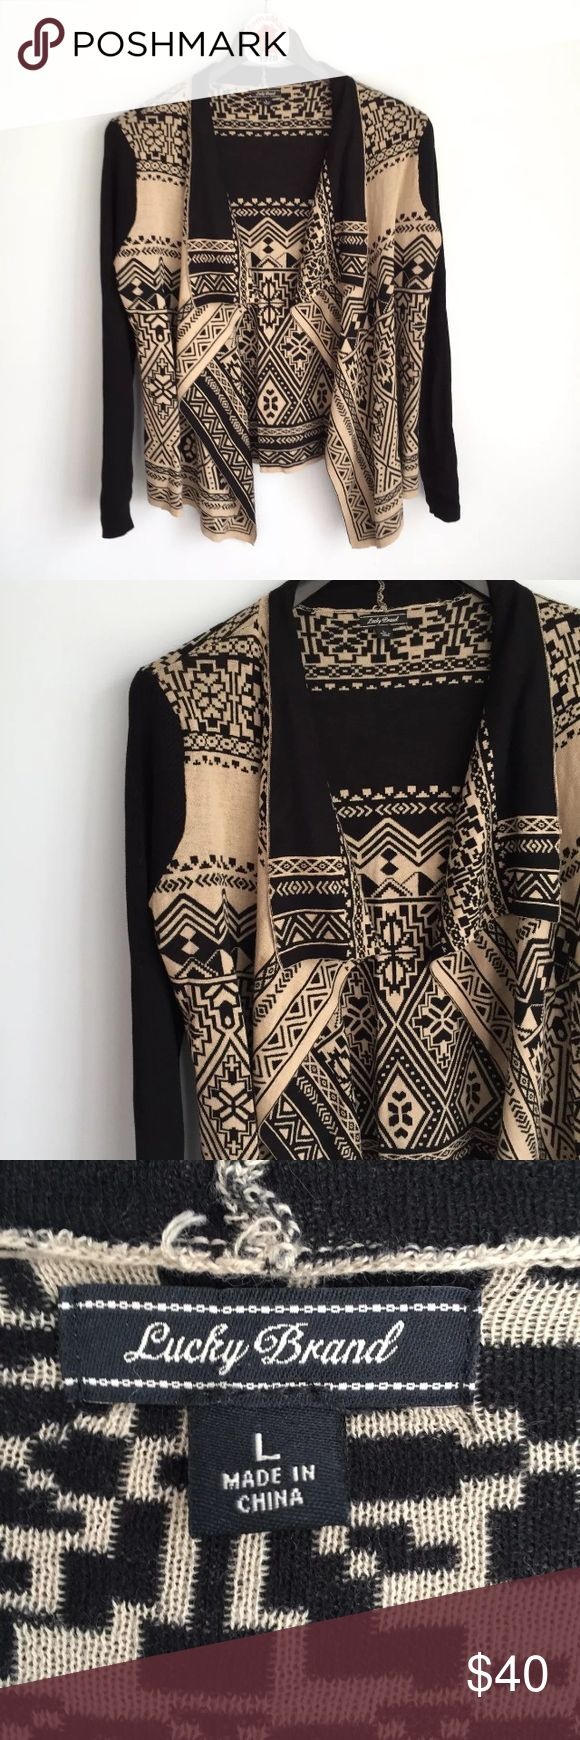 """Lucky Brand Waterfall Aztec Print Cardigan Sweater Women's Lucky Brand Double Knit Waterfall Open Front Aztec Print Cardigan Sweater Long Sleeve Pre-owned in great condition with no flaws Size L Measures 22"""" across back arm pit to arm pit laying flat Length is 27"""" long Lucky Brand Sweaters Cardigans"""